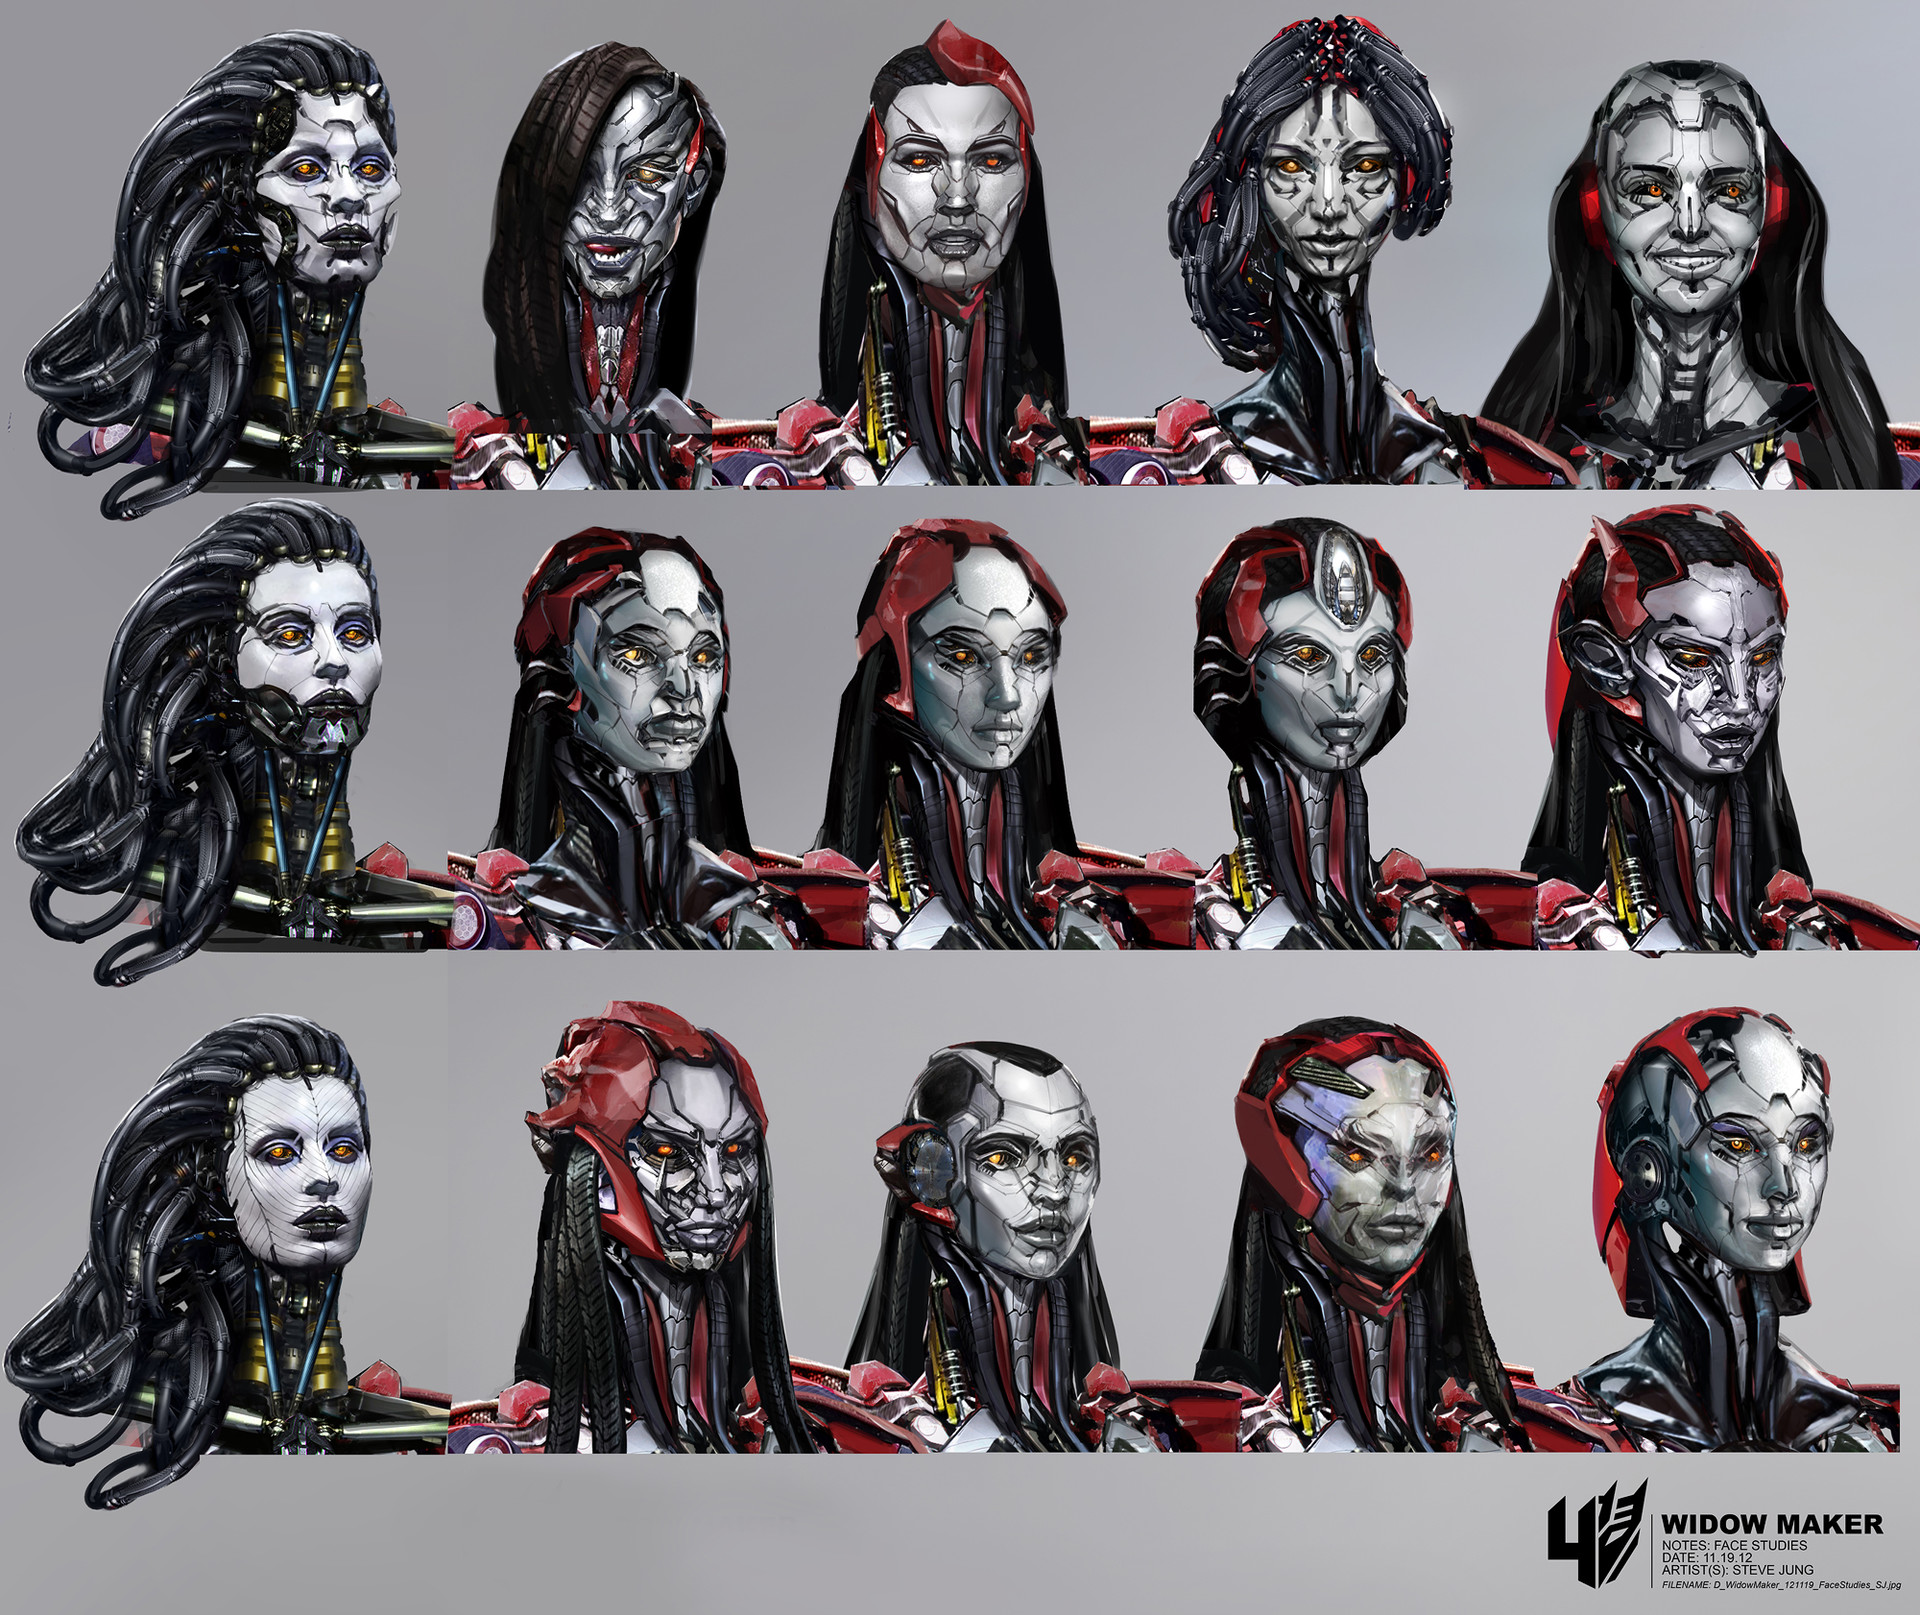 Steve jung d widowmaker 121119 facestudies sj low